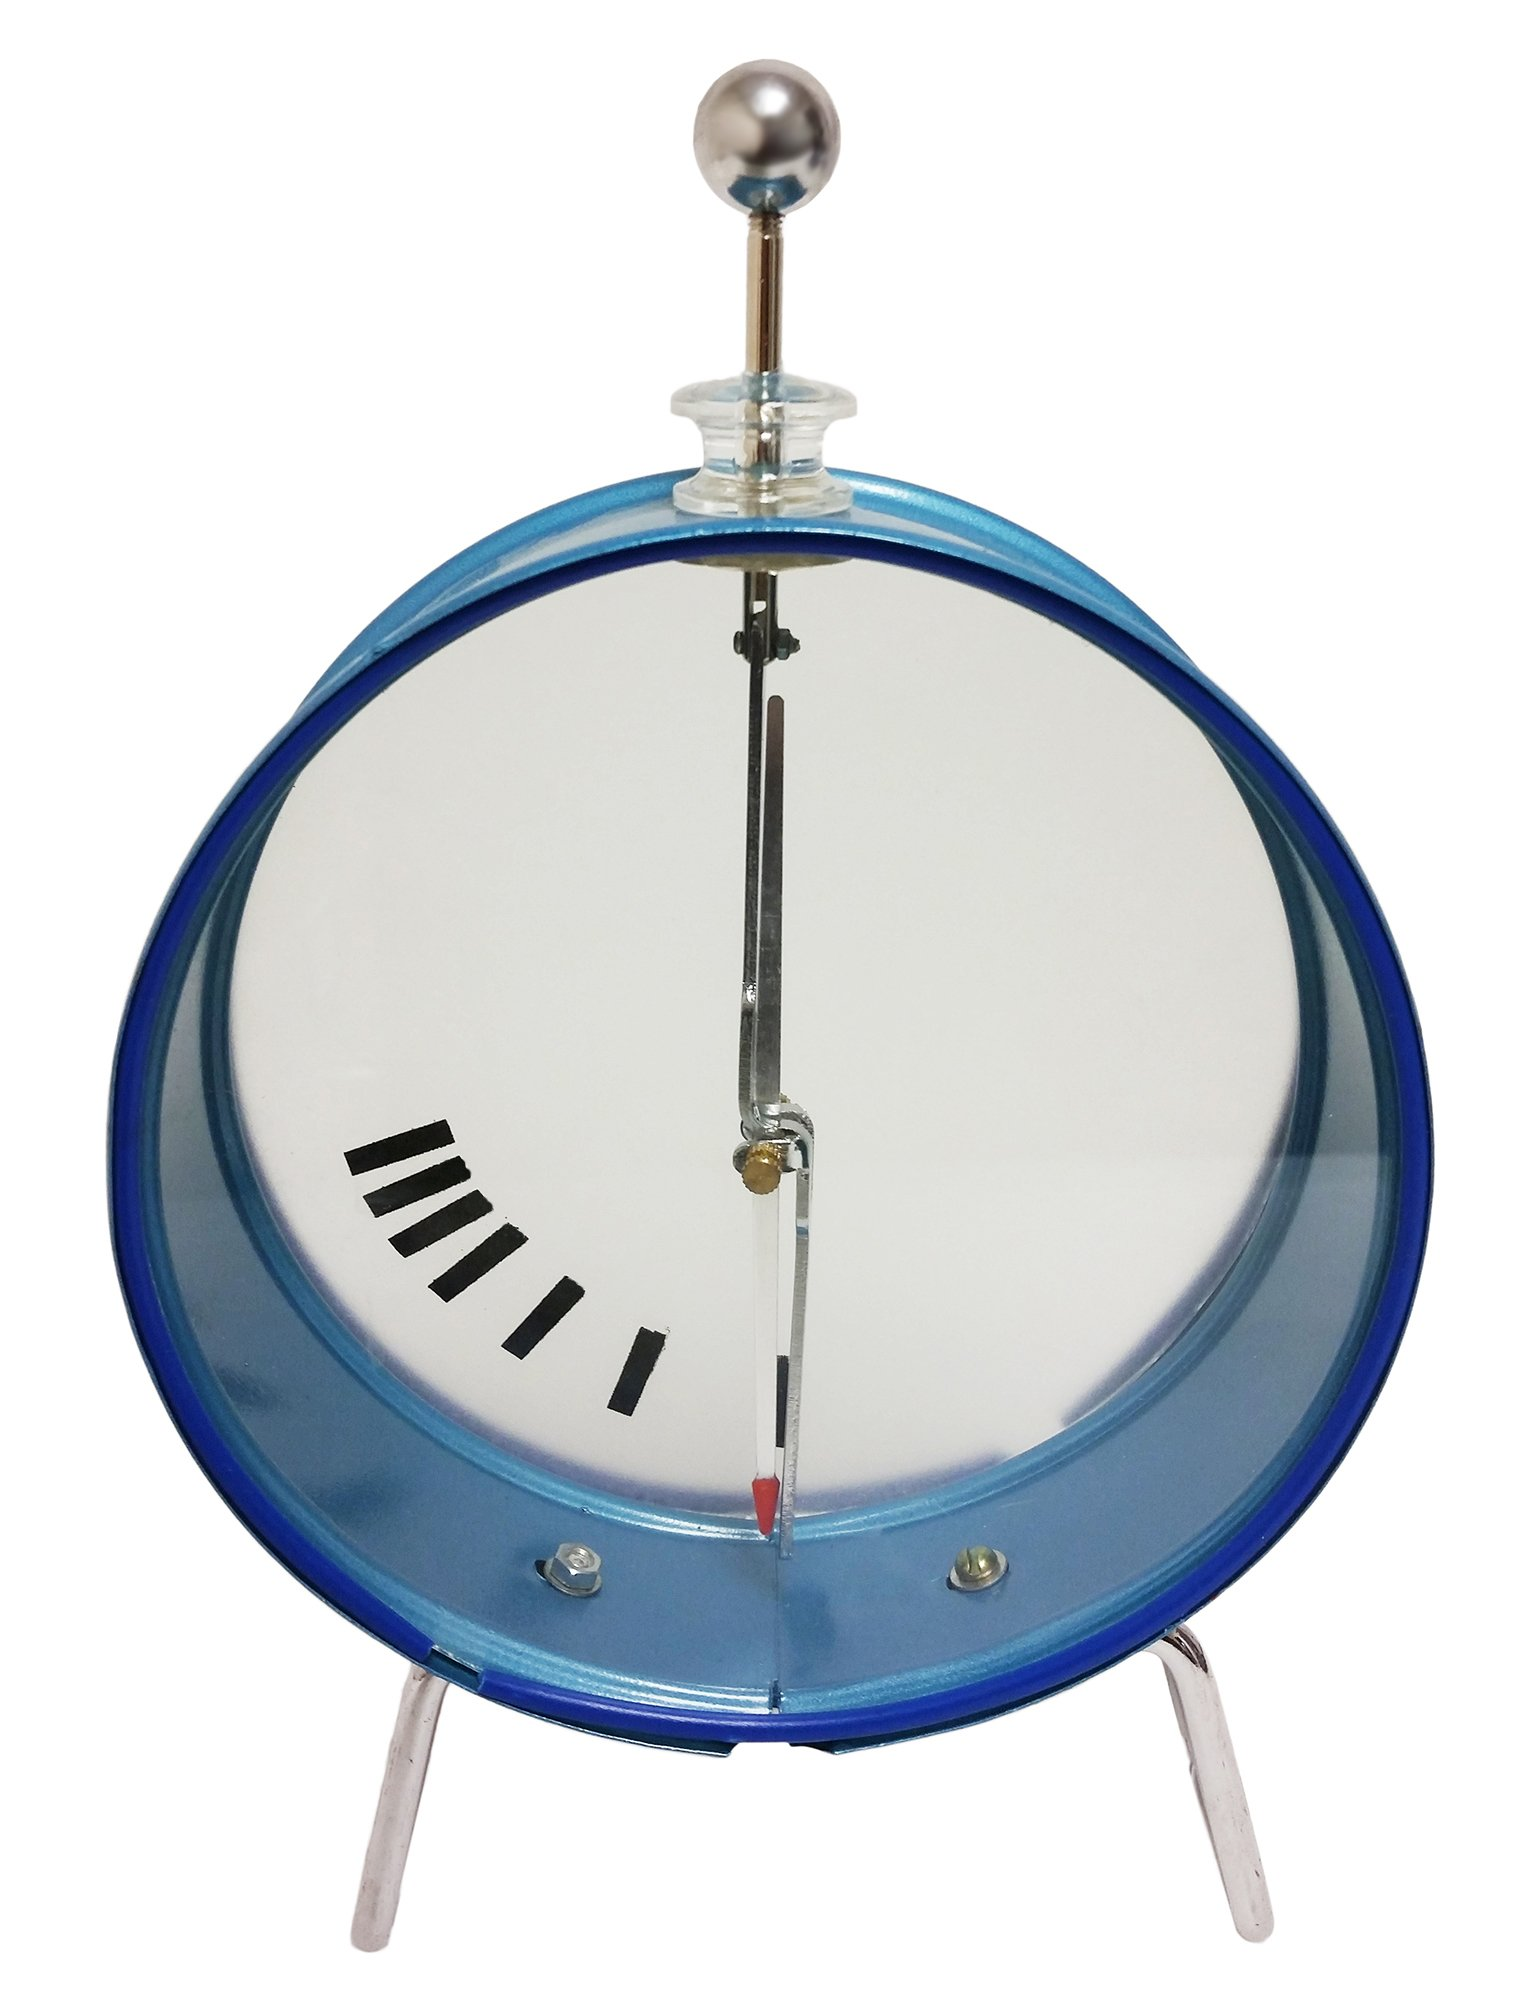 GSC International 4-50190 Electroscope with Round Case, Free-Spinning Pointer, and Indicator Gauge by GSC International Inc.